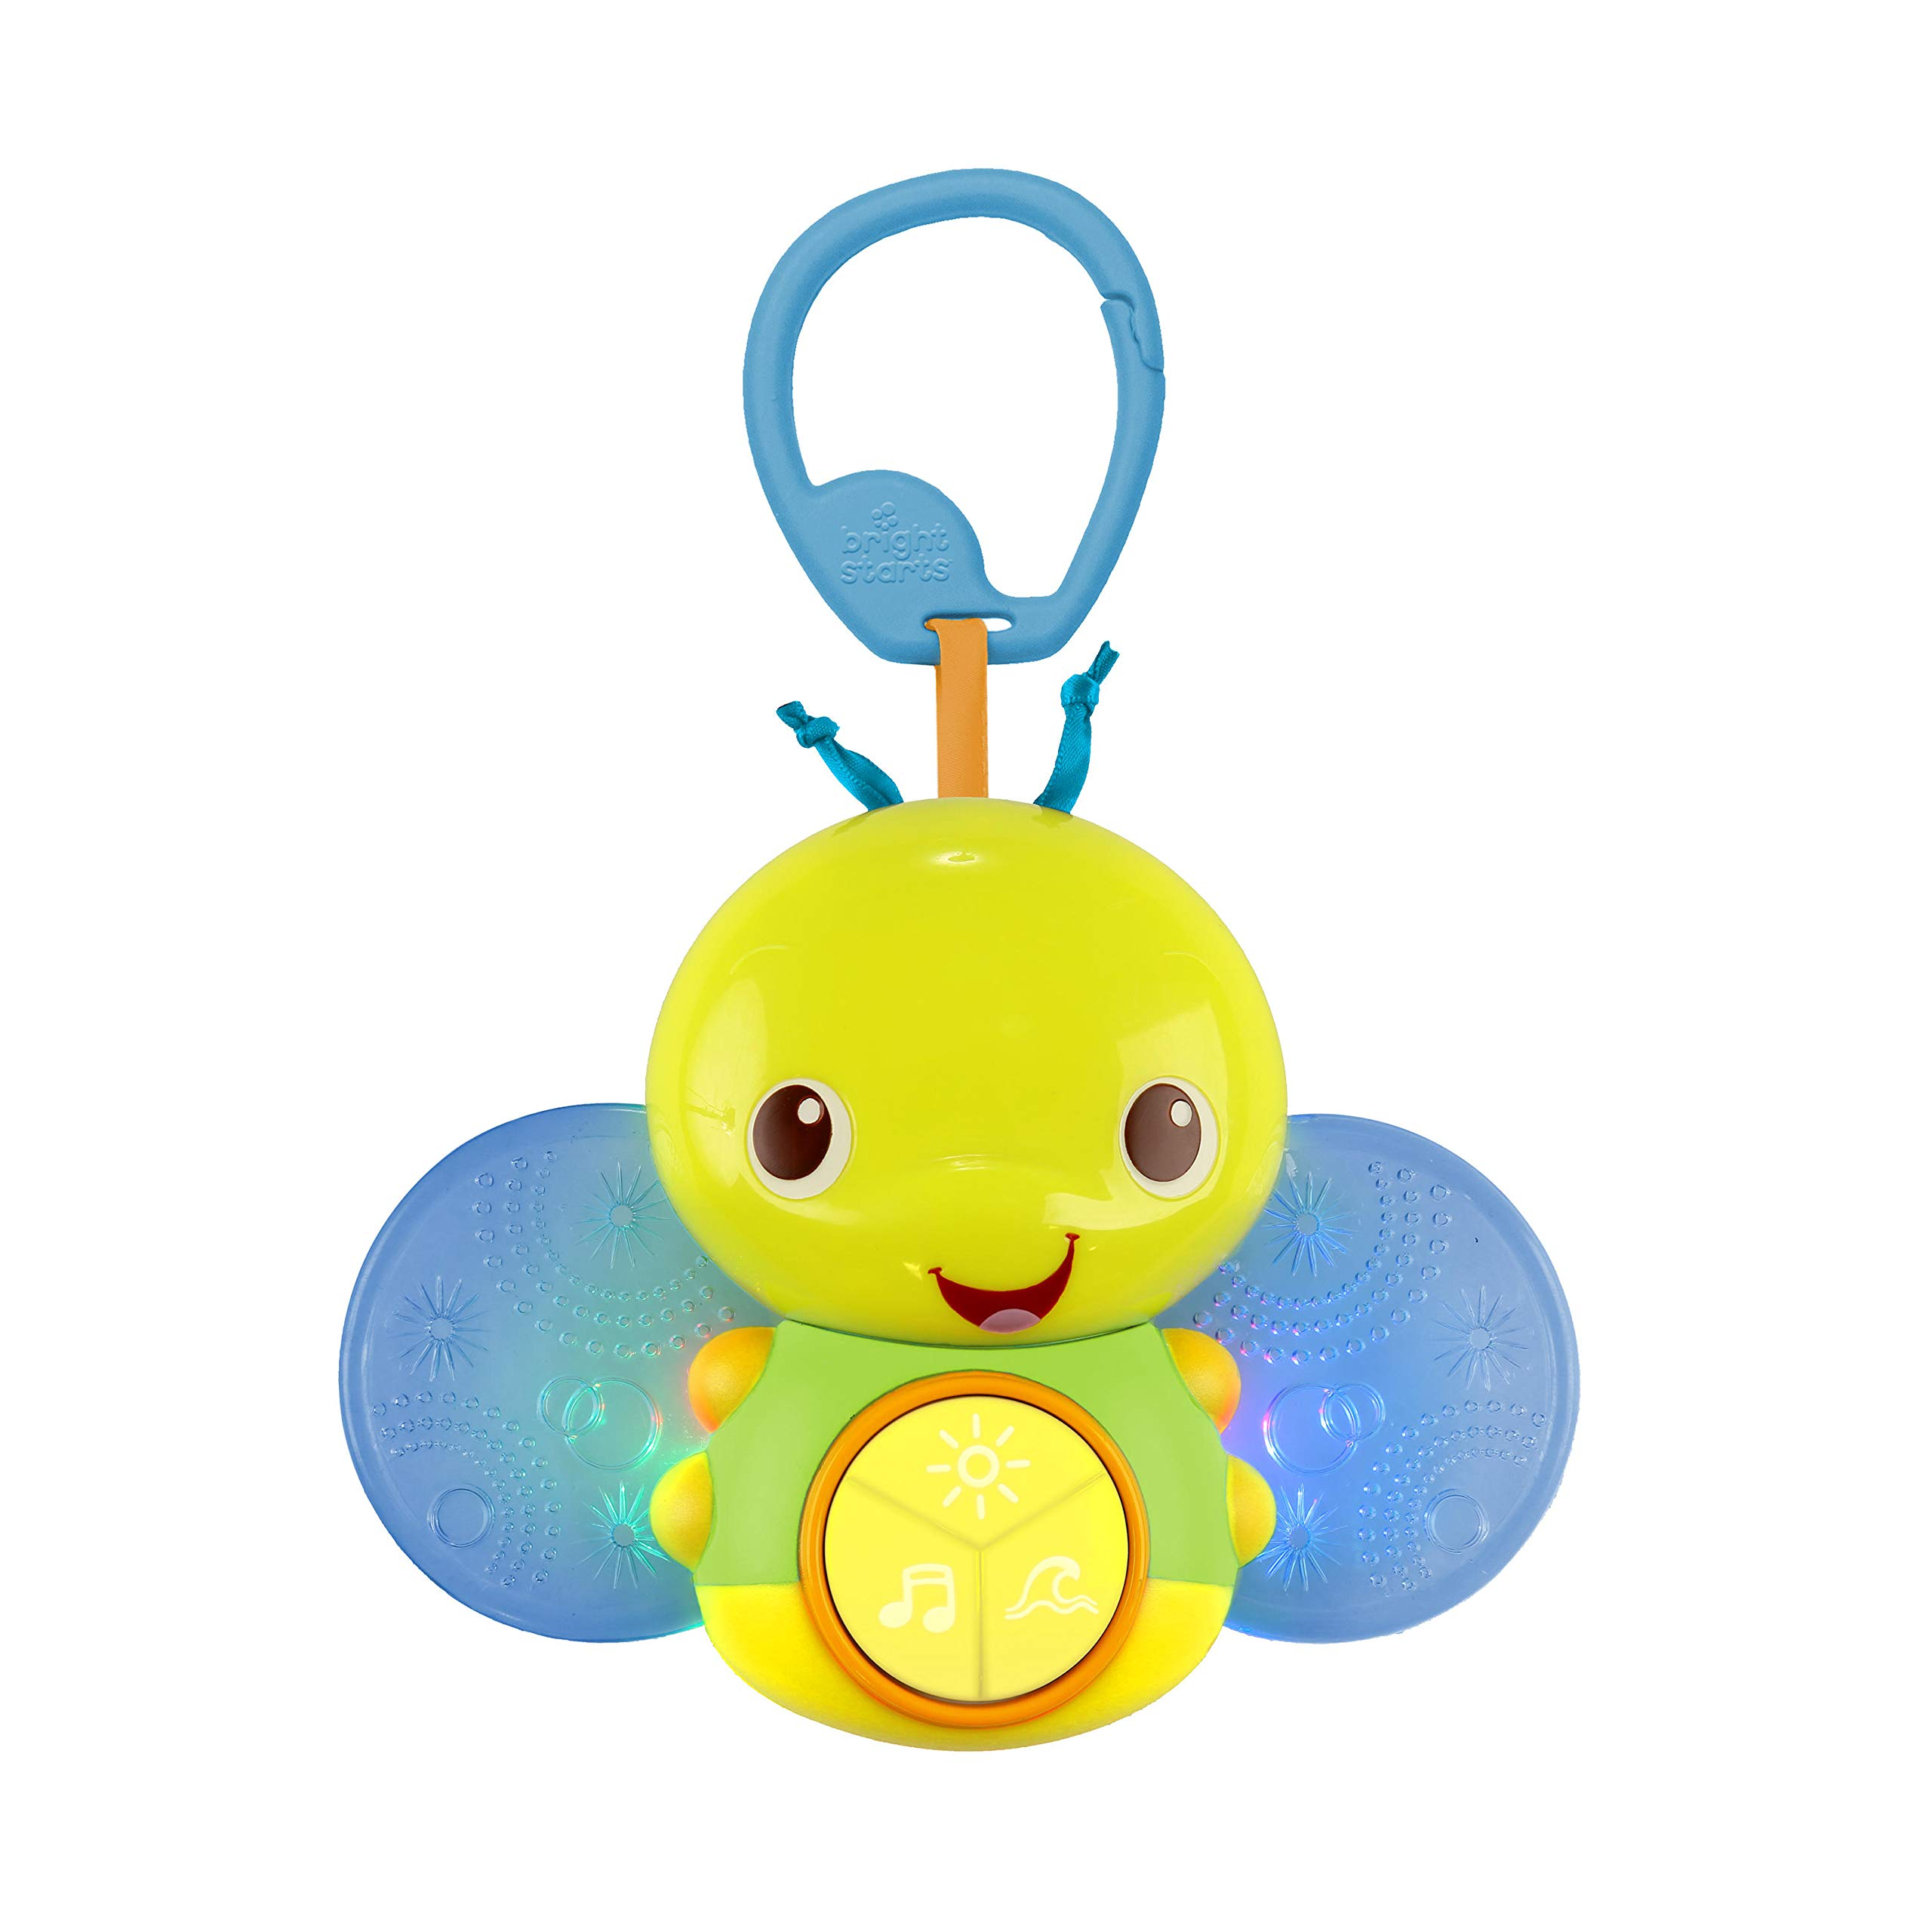 Kimy Owl Tumbler Hanging Rattle Toys for 3-12 month old baby Best Gifts